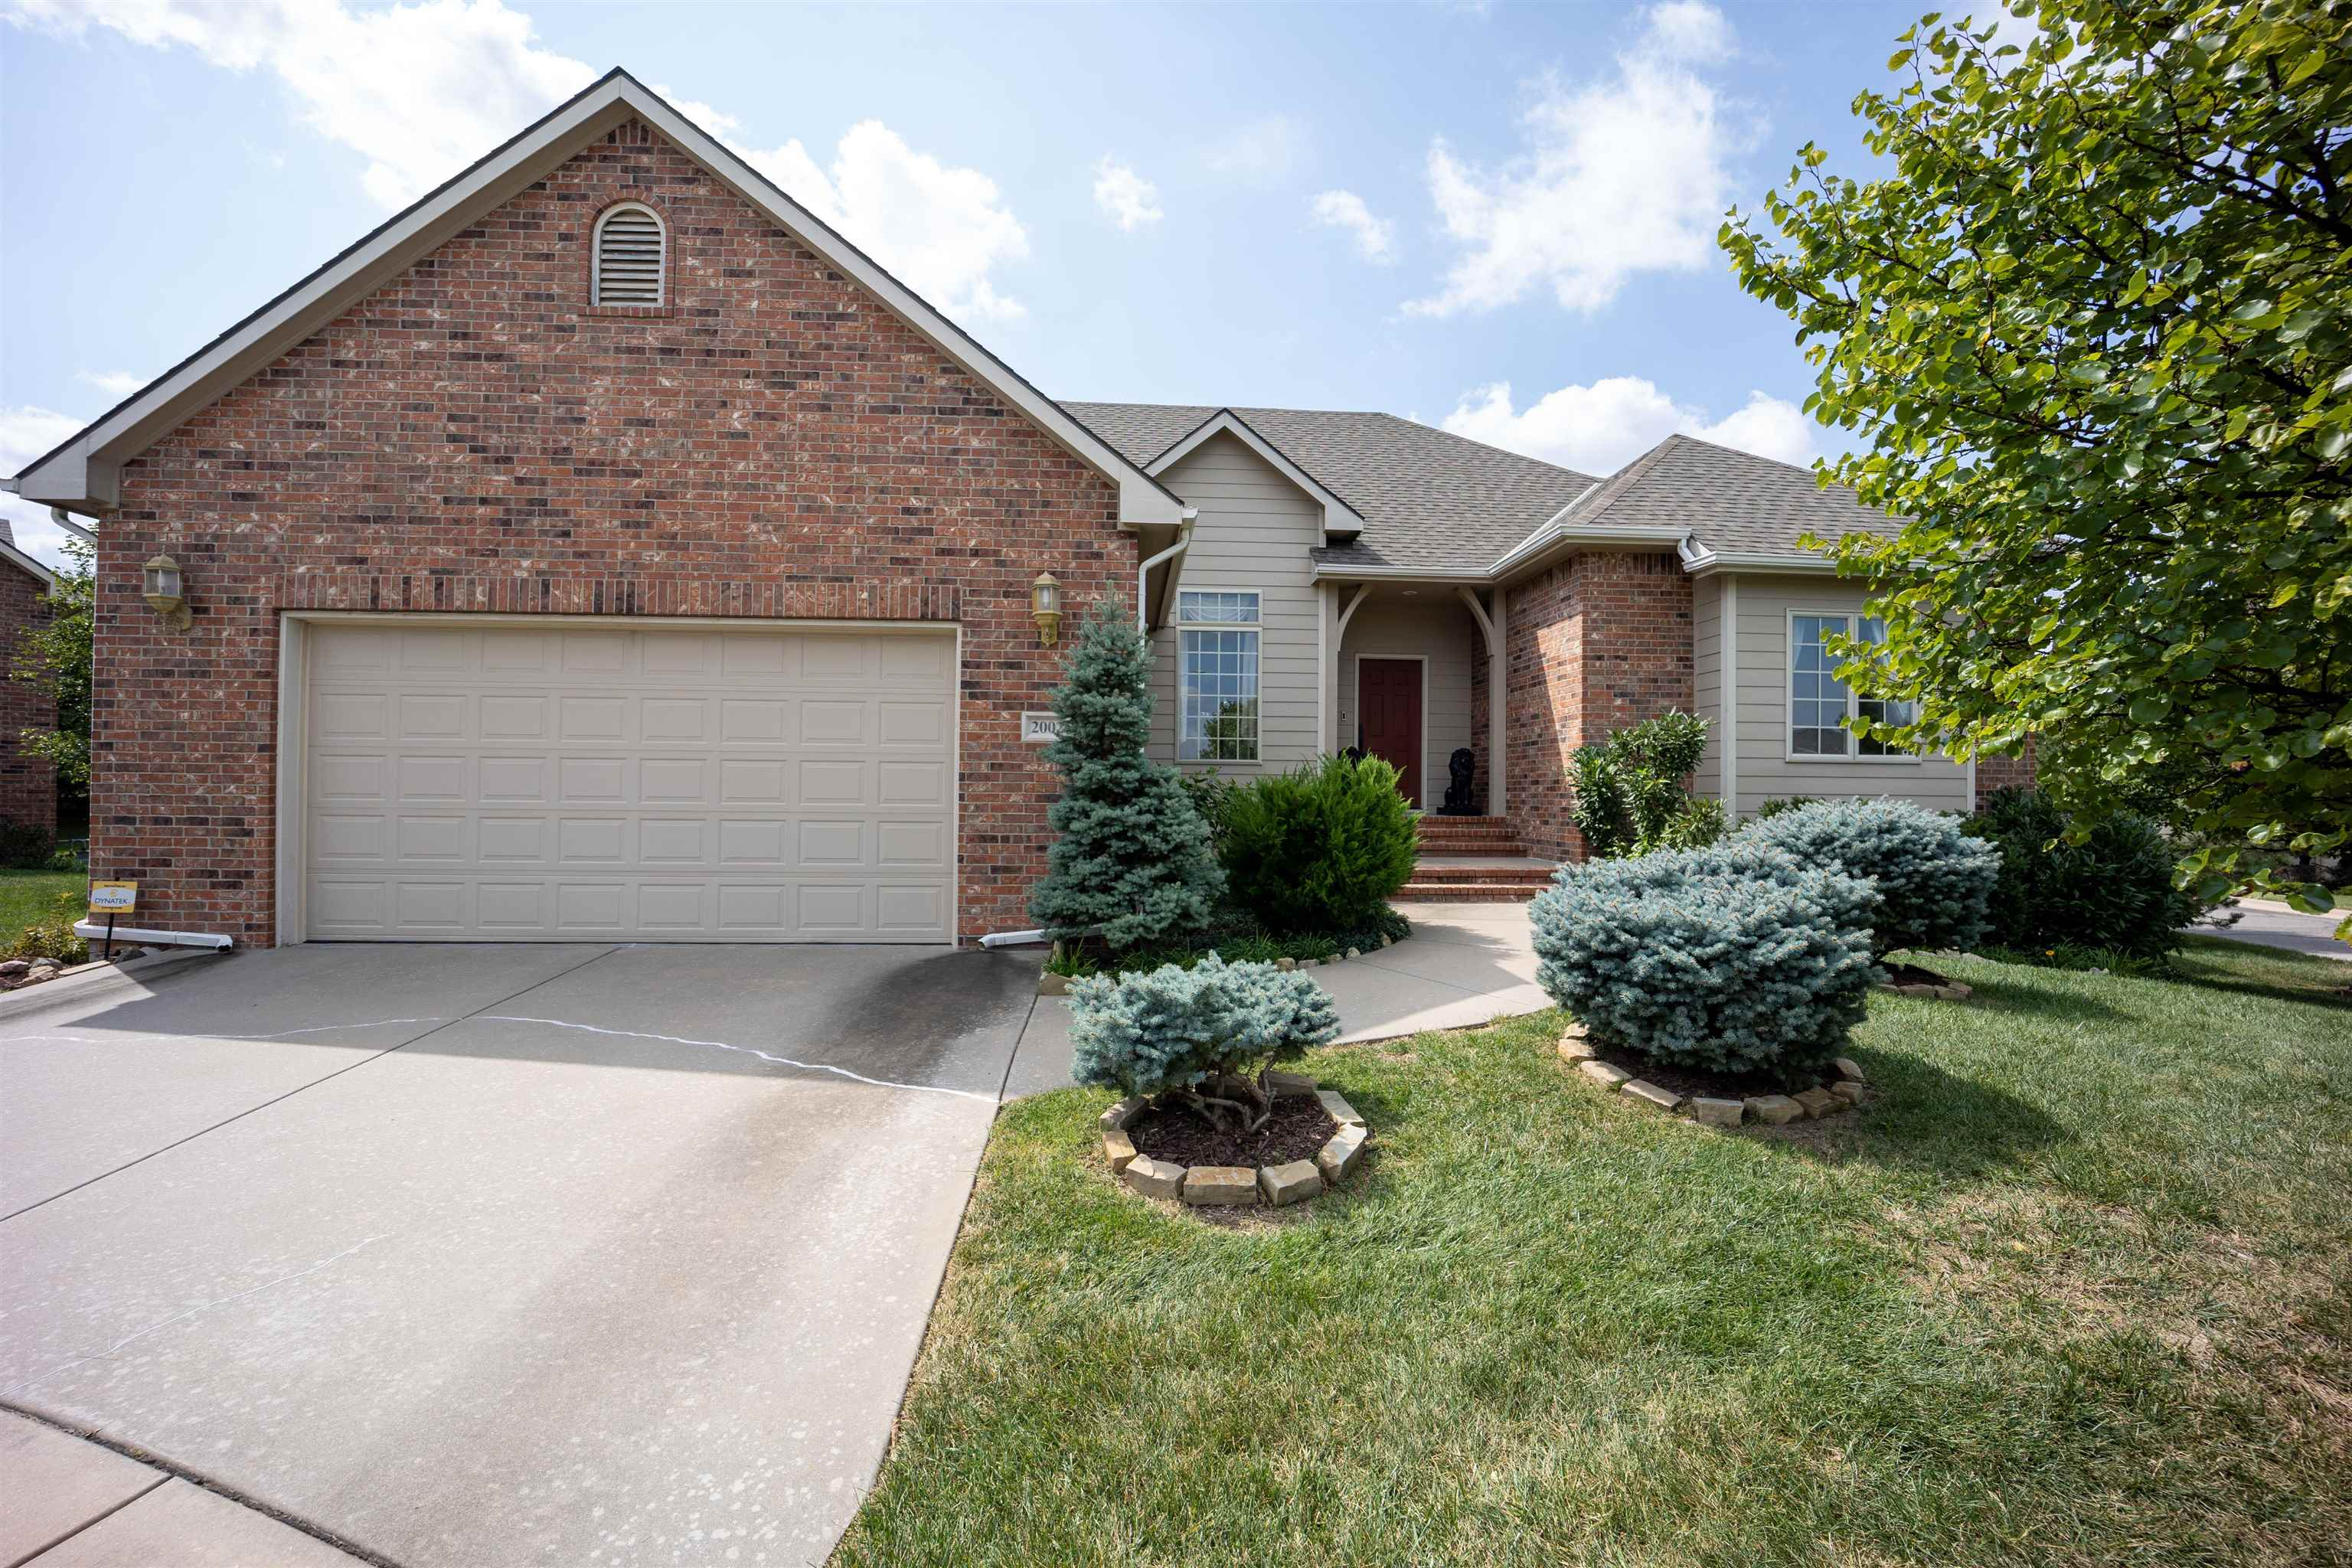 This immaculately maintained patio home is situated on a corner cul-de-sac lot and features a great